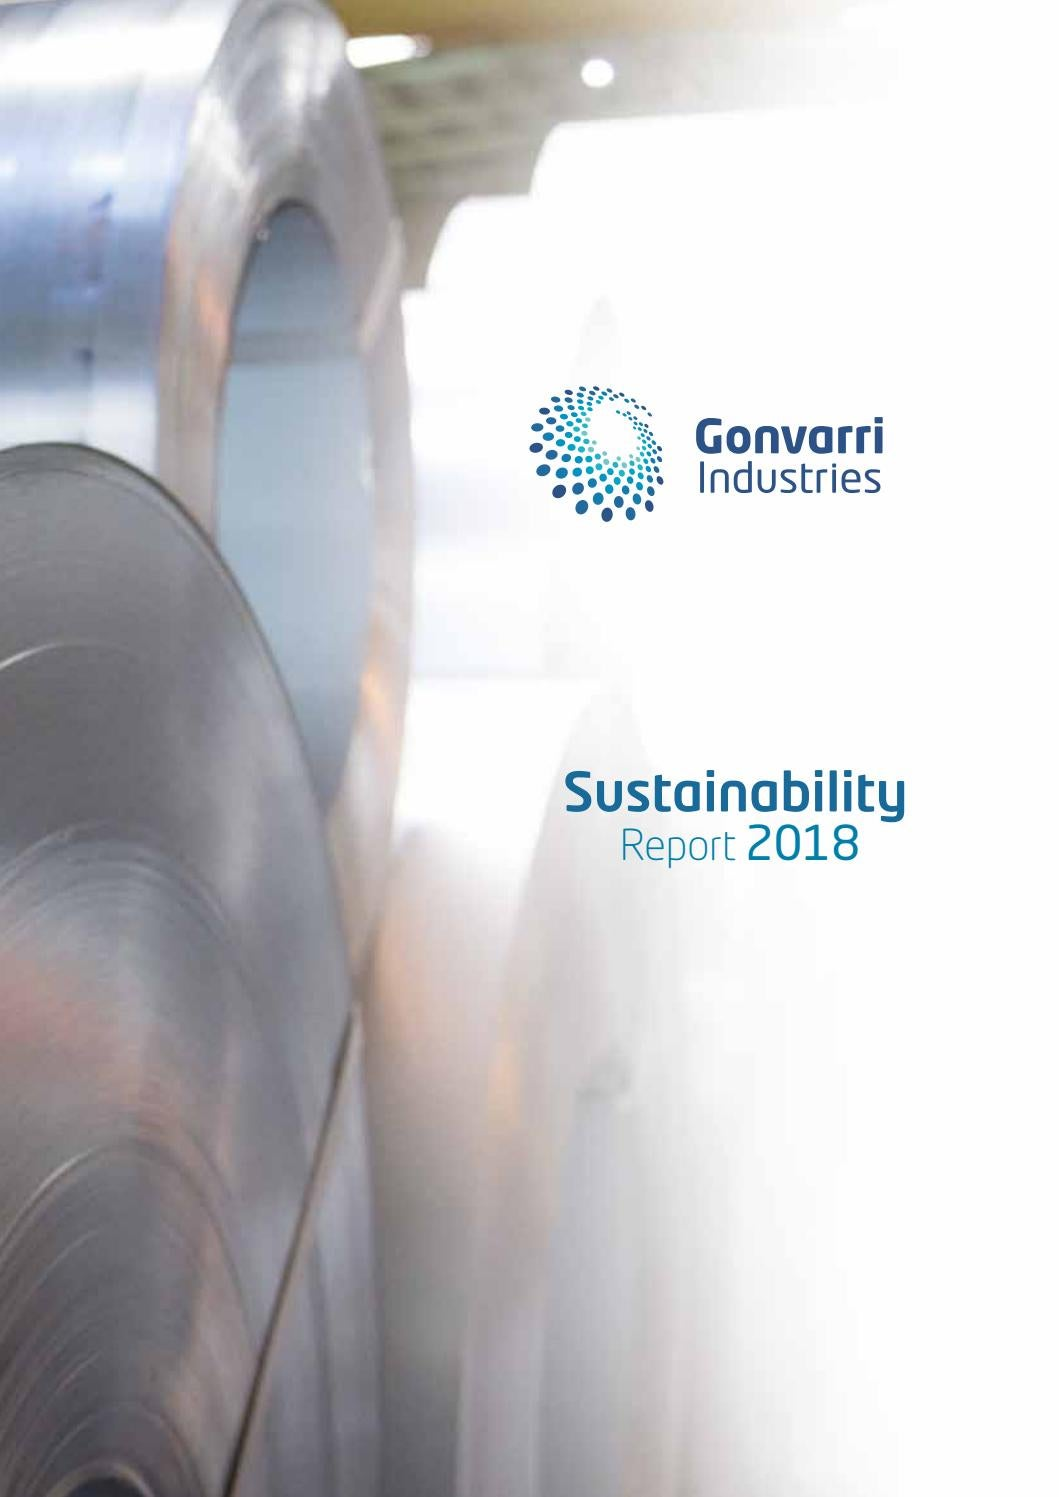 Gonvarri Industries - Sustainability Report 2018 by